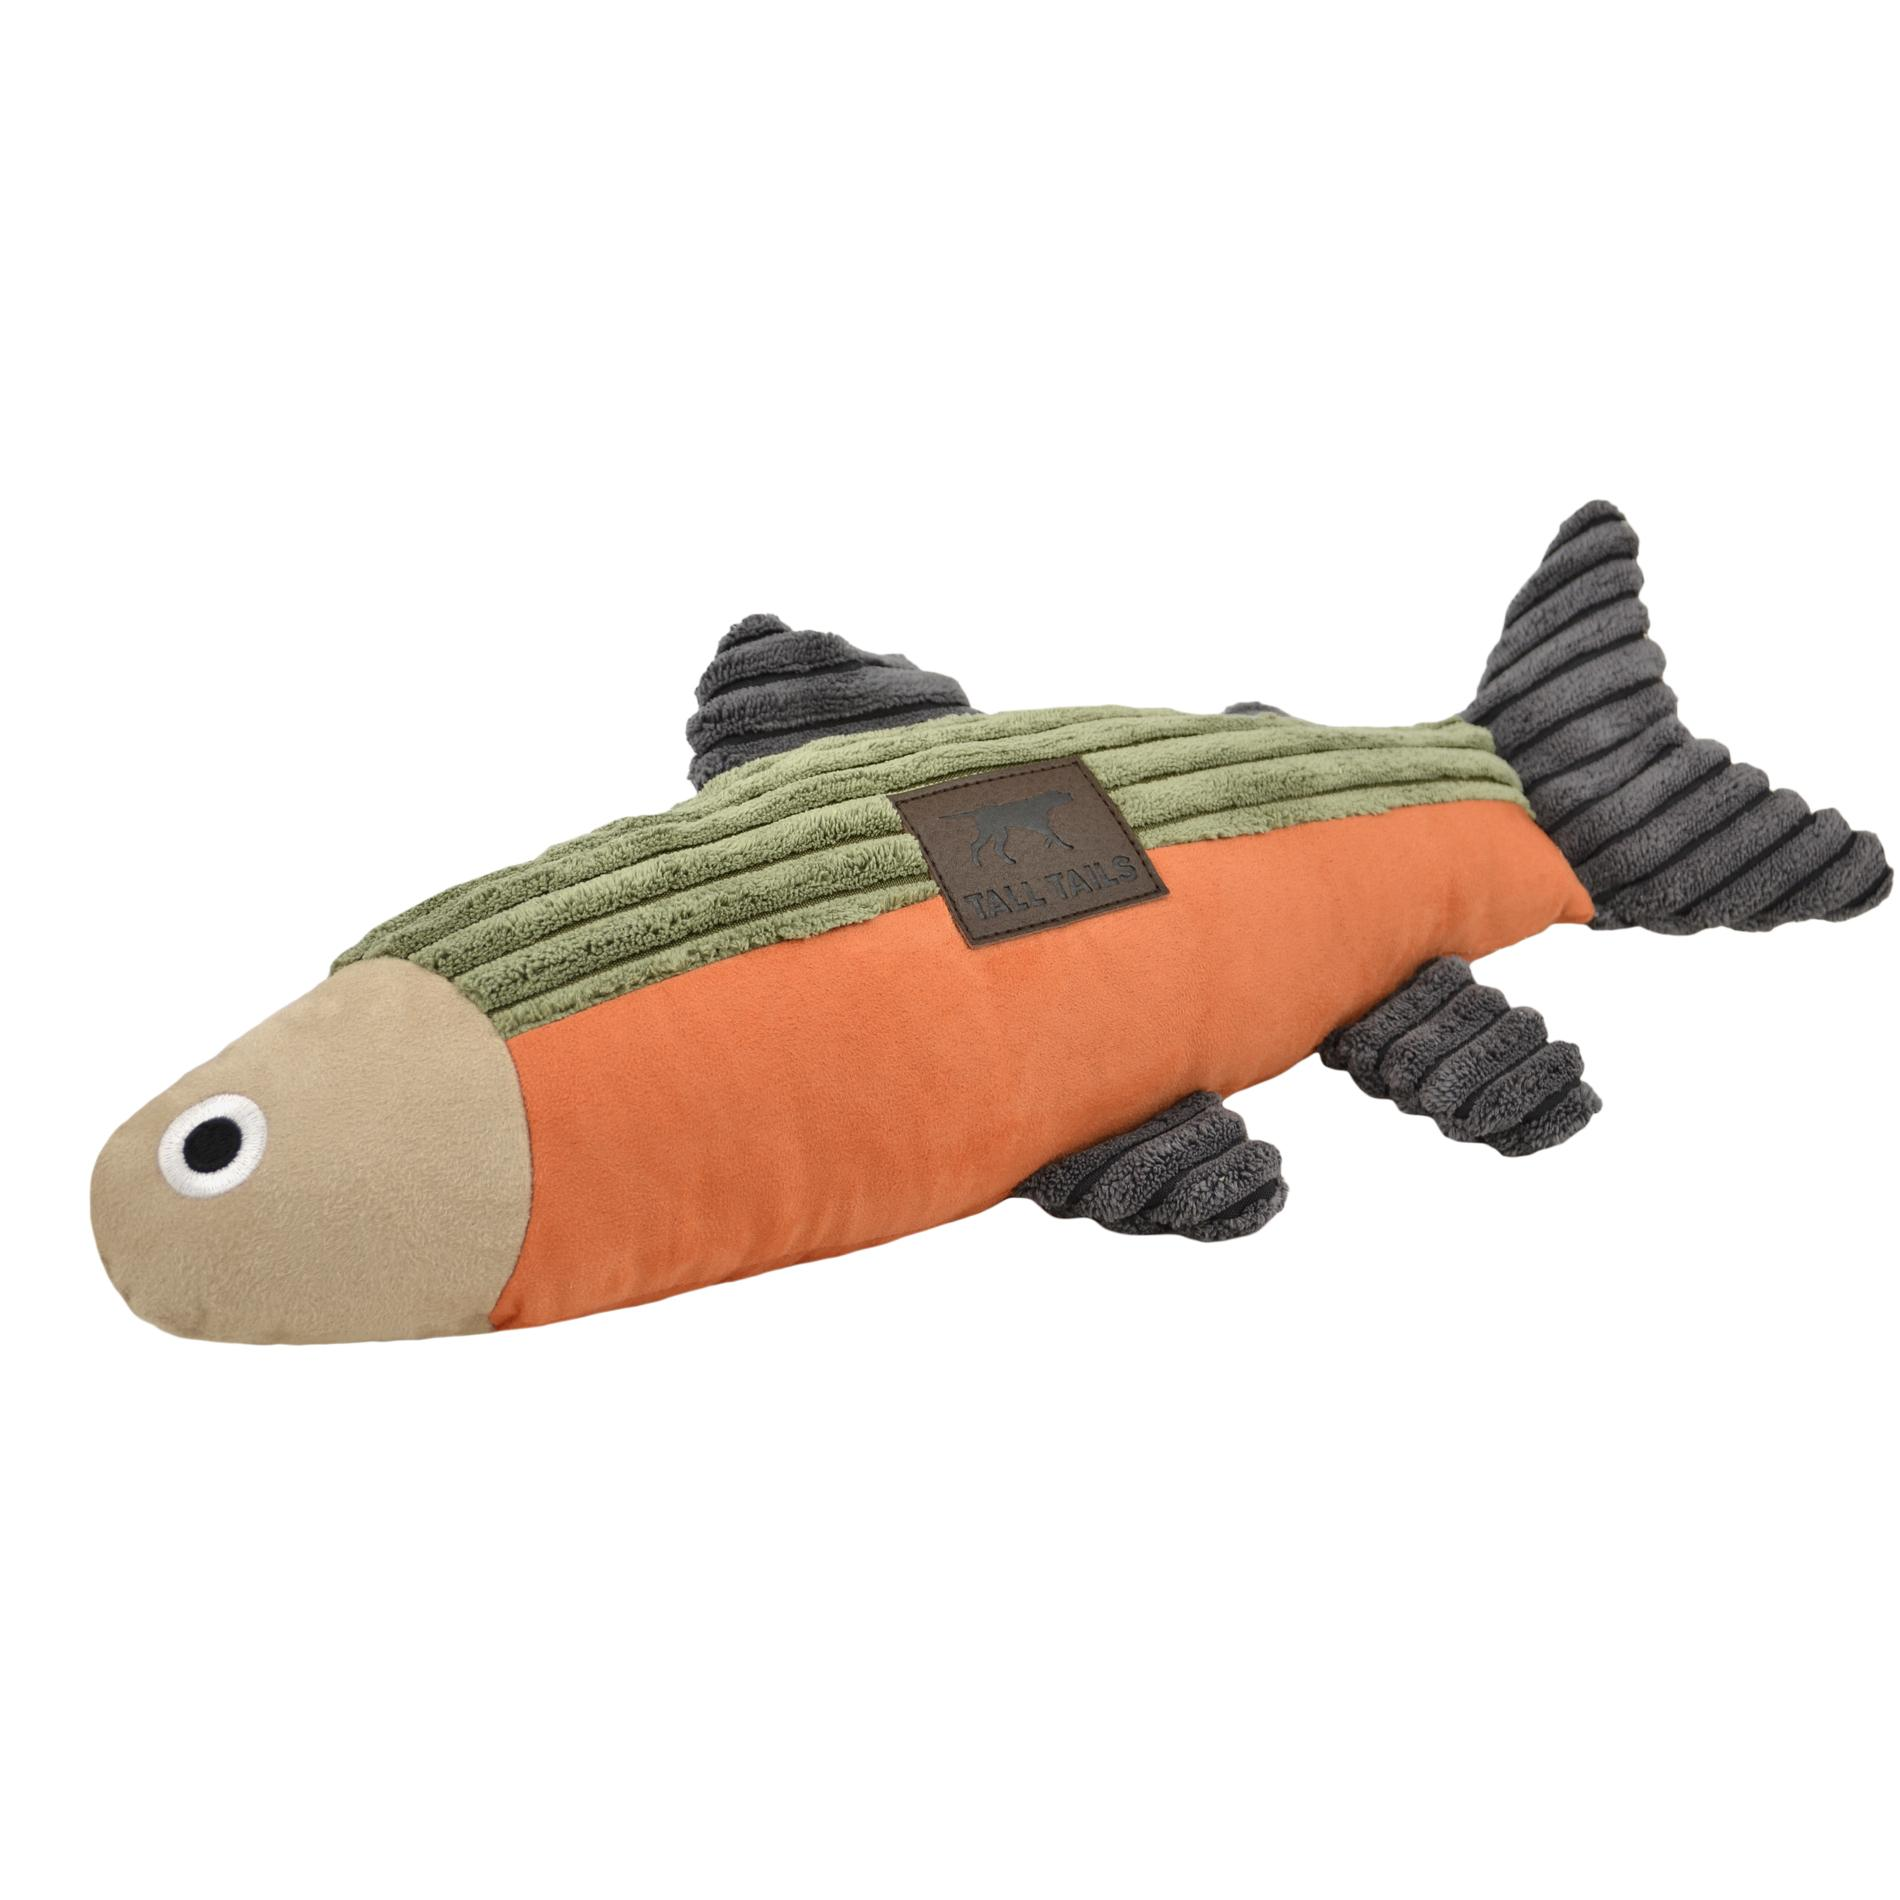 Tall Tails Squeaker Fish Dog Toy, 12-in